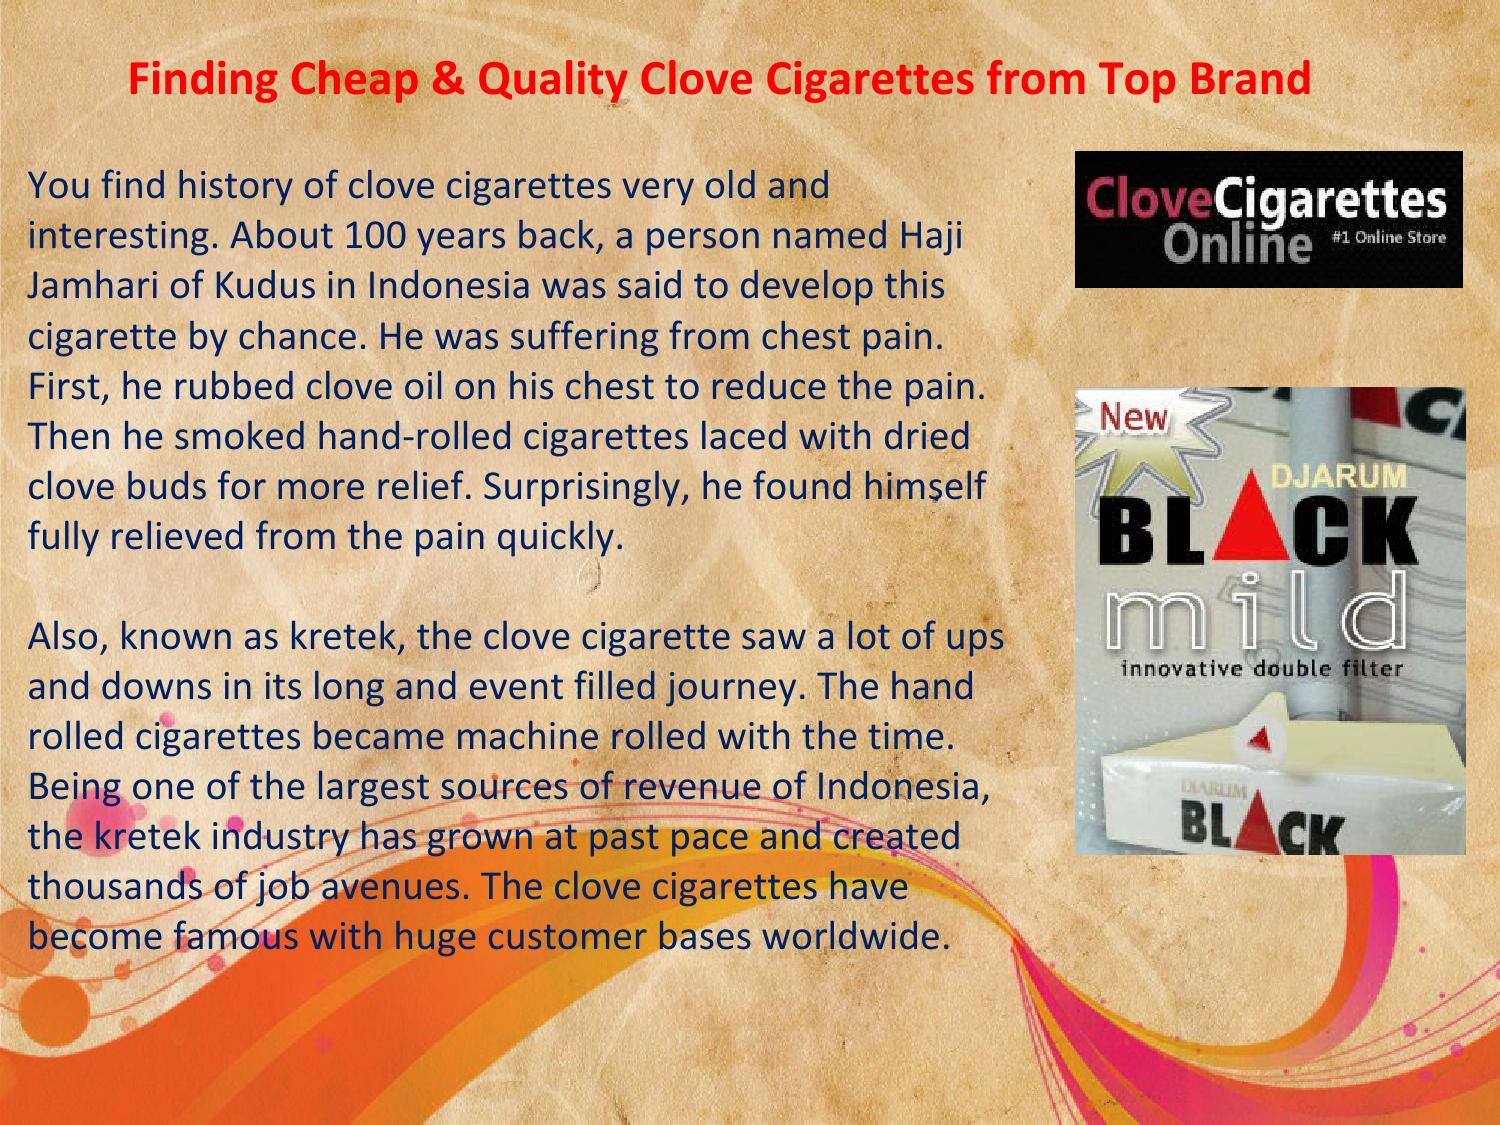 Finding cheap & quality clove cigarettes from top brand by